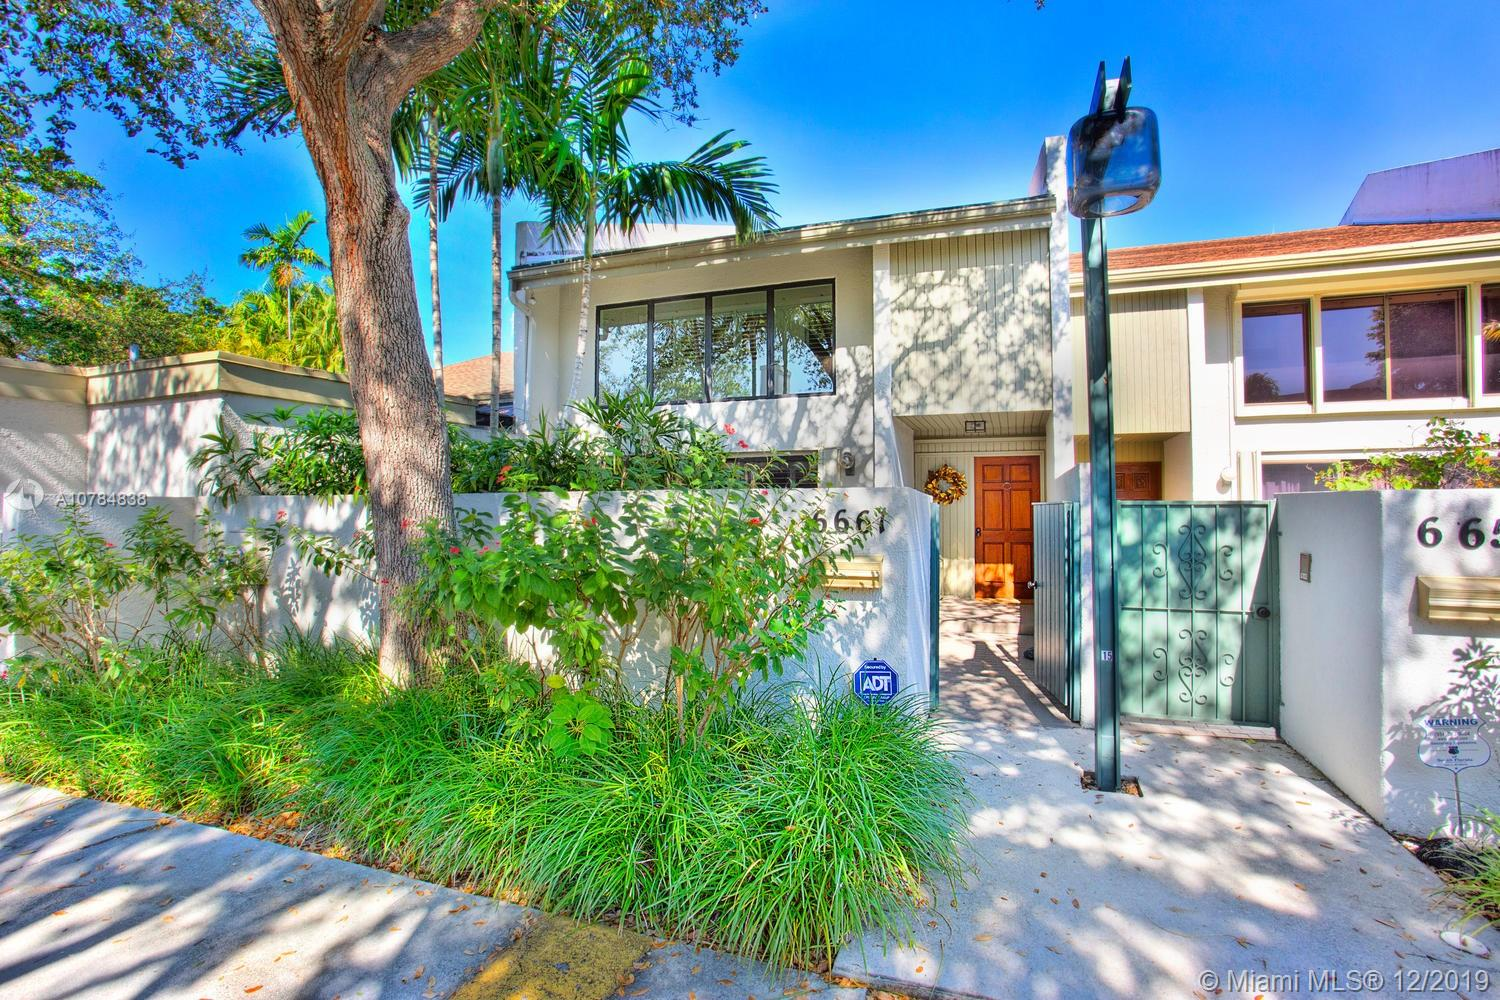 6661 SW 70 Ln #32 For Sale A10784838, FL